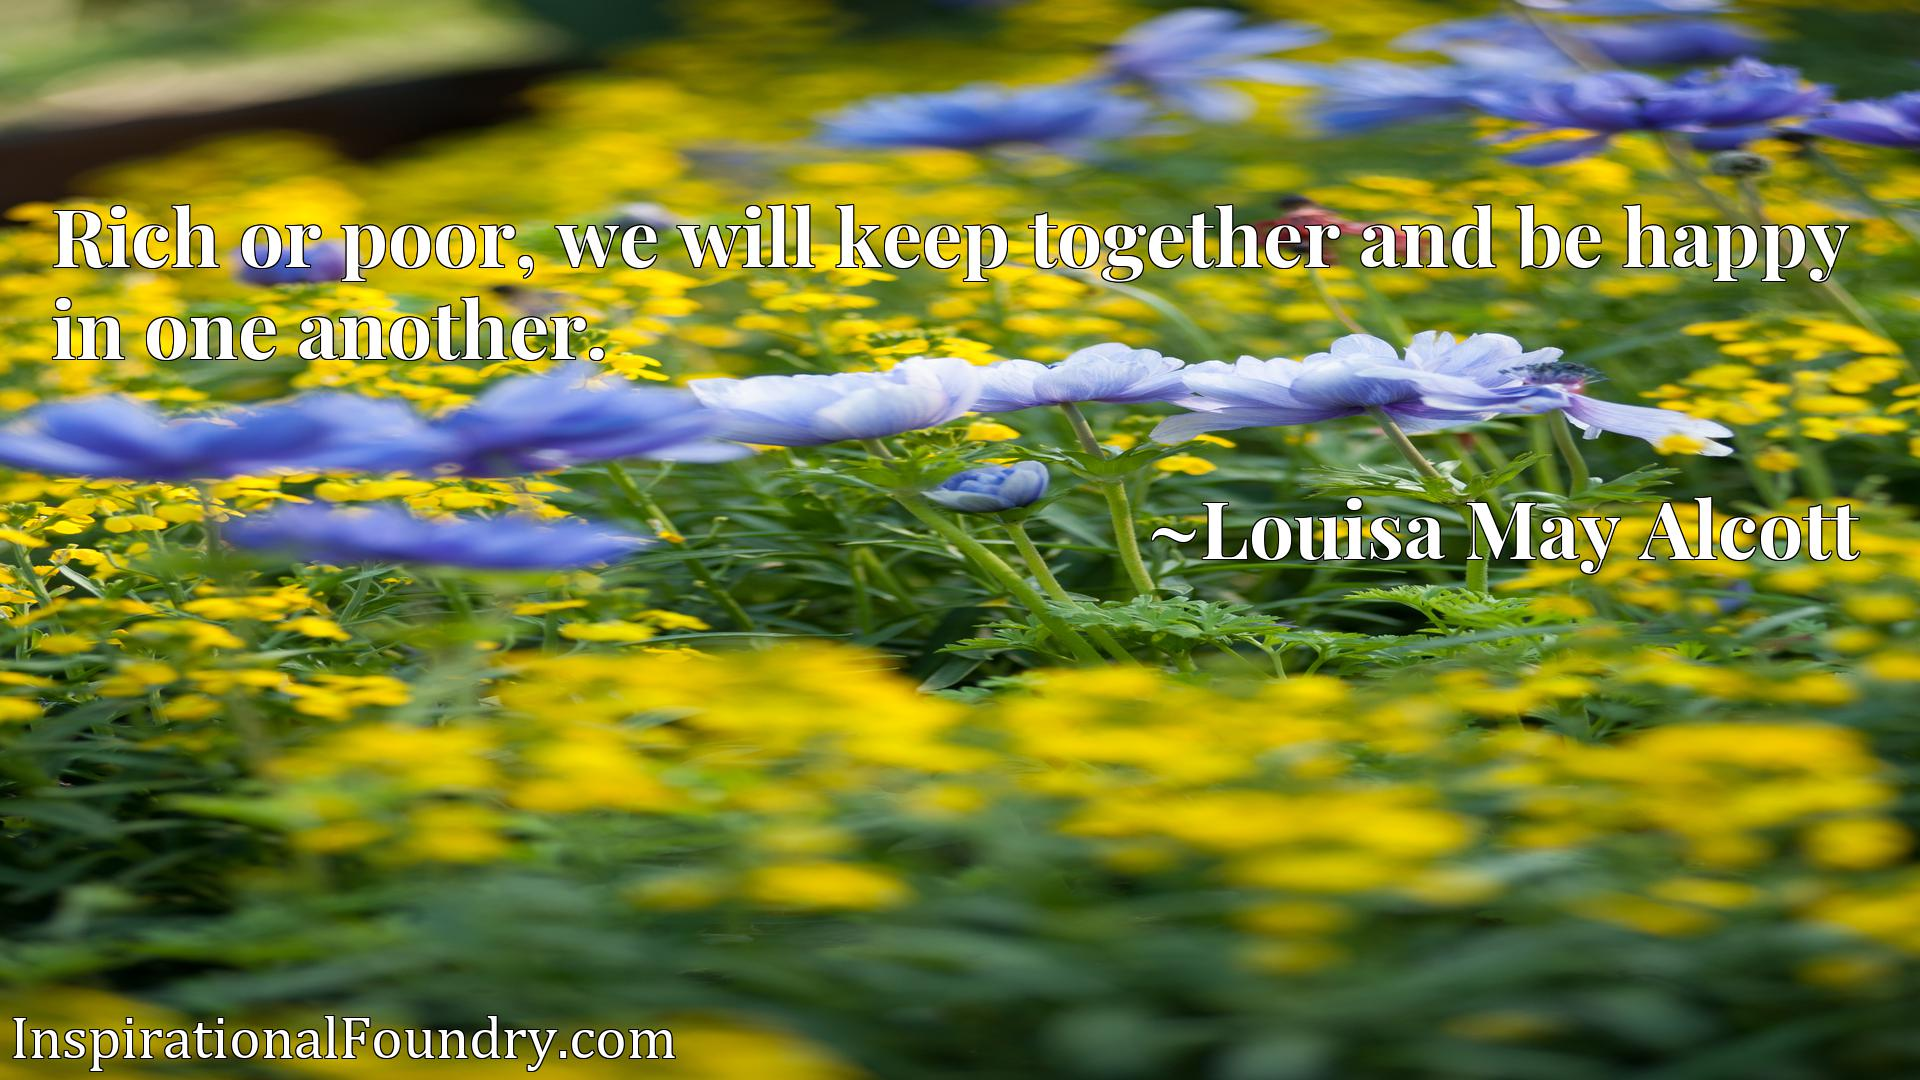 Rich or poor, we will keep together and be happy in one another.